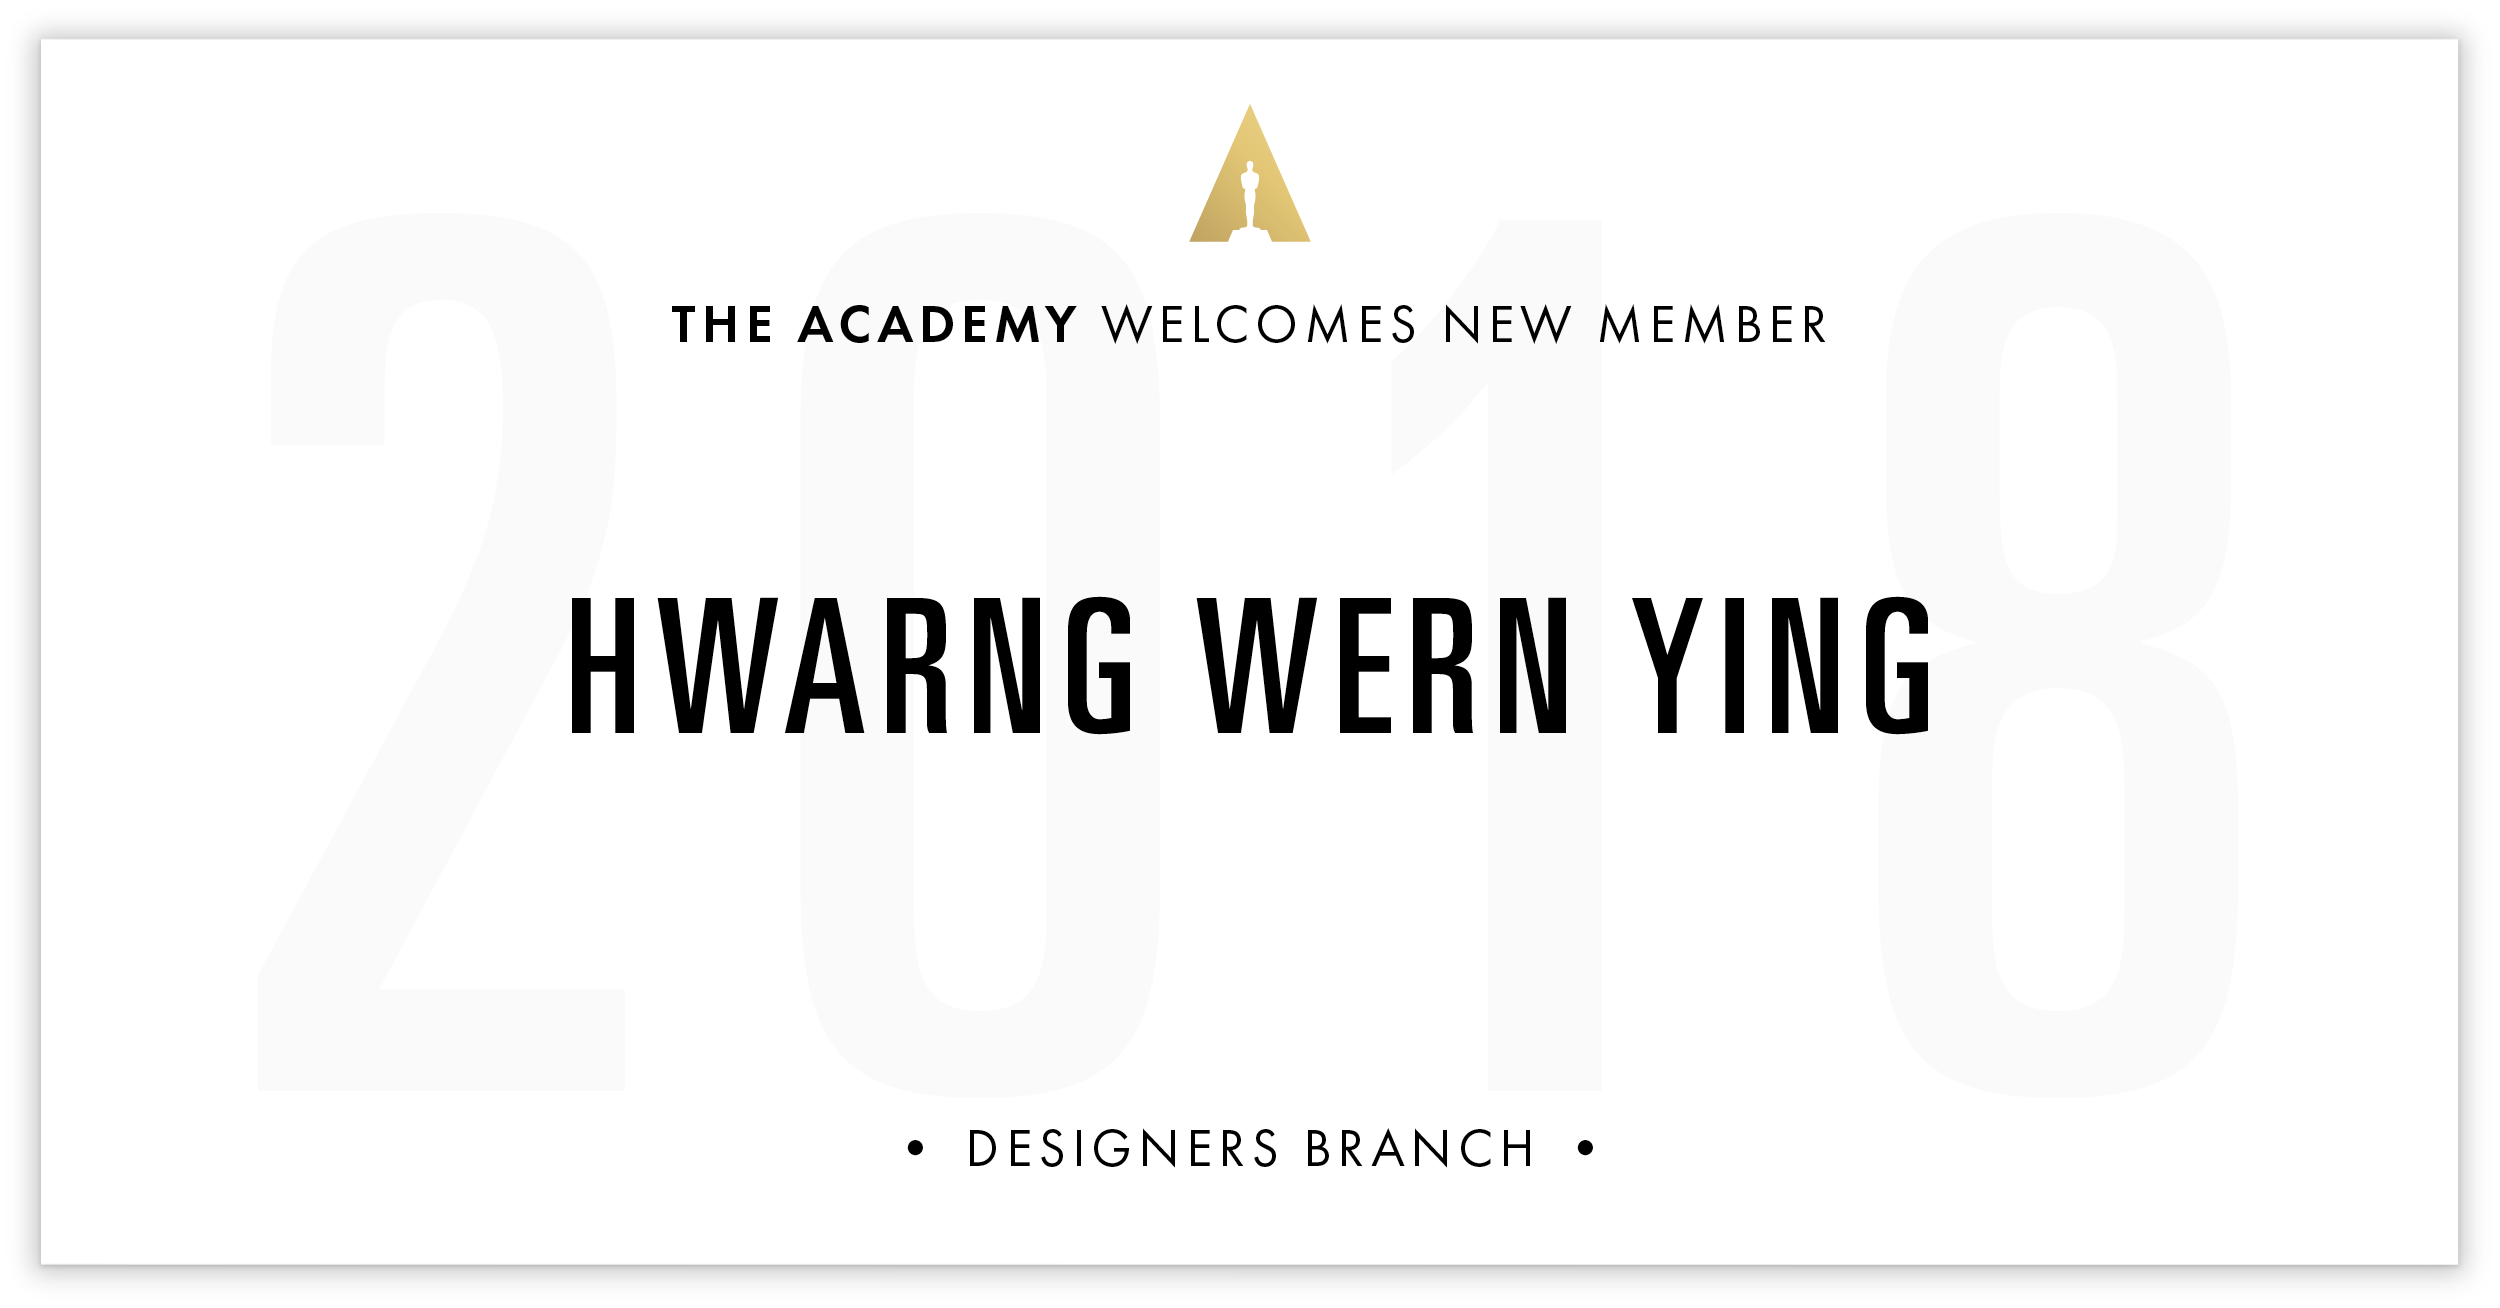 Hwarng Wern Ying is invited!